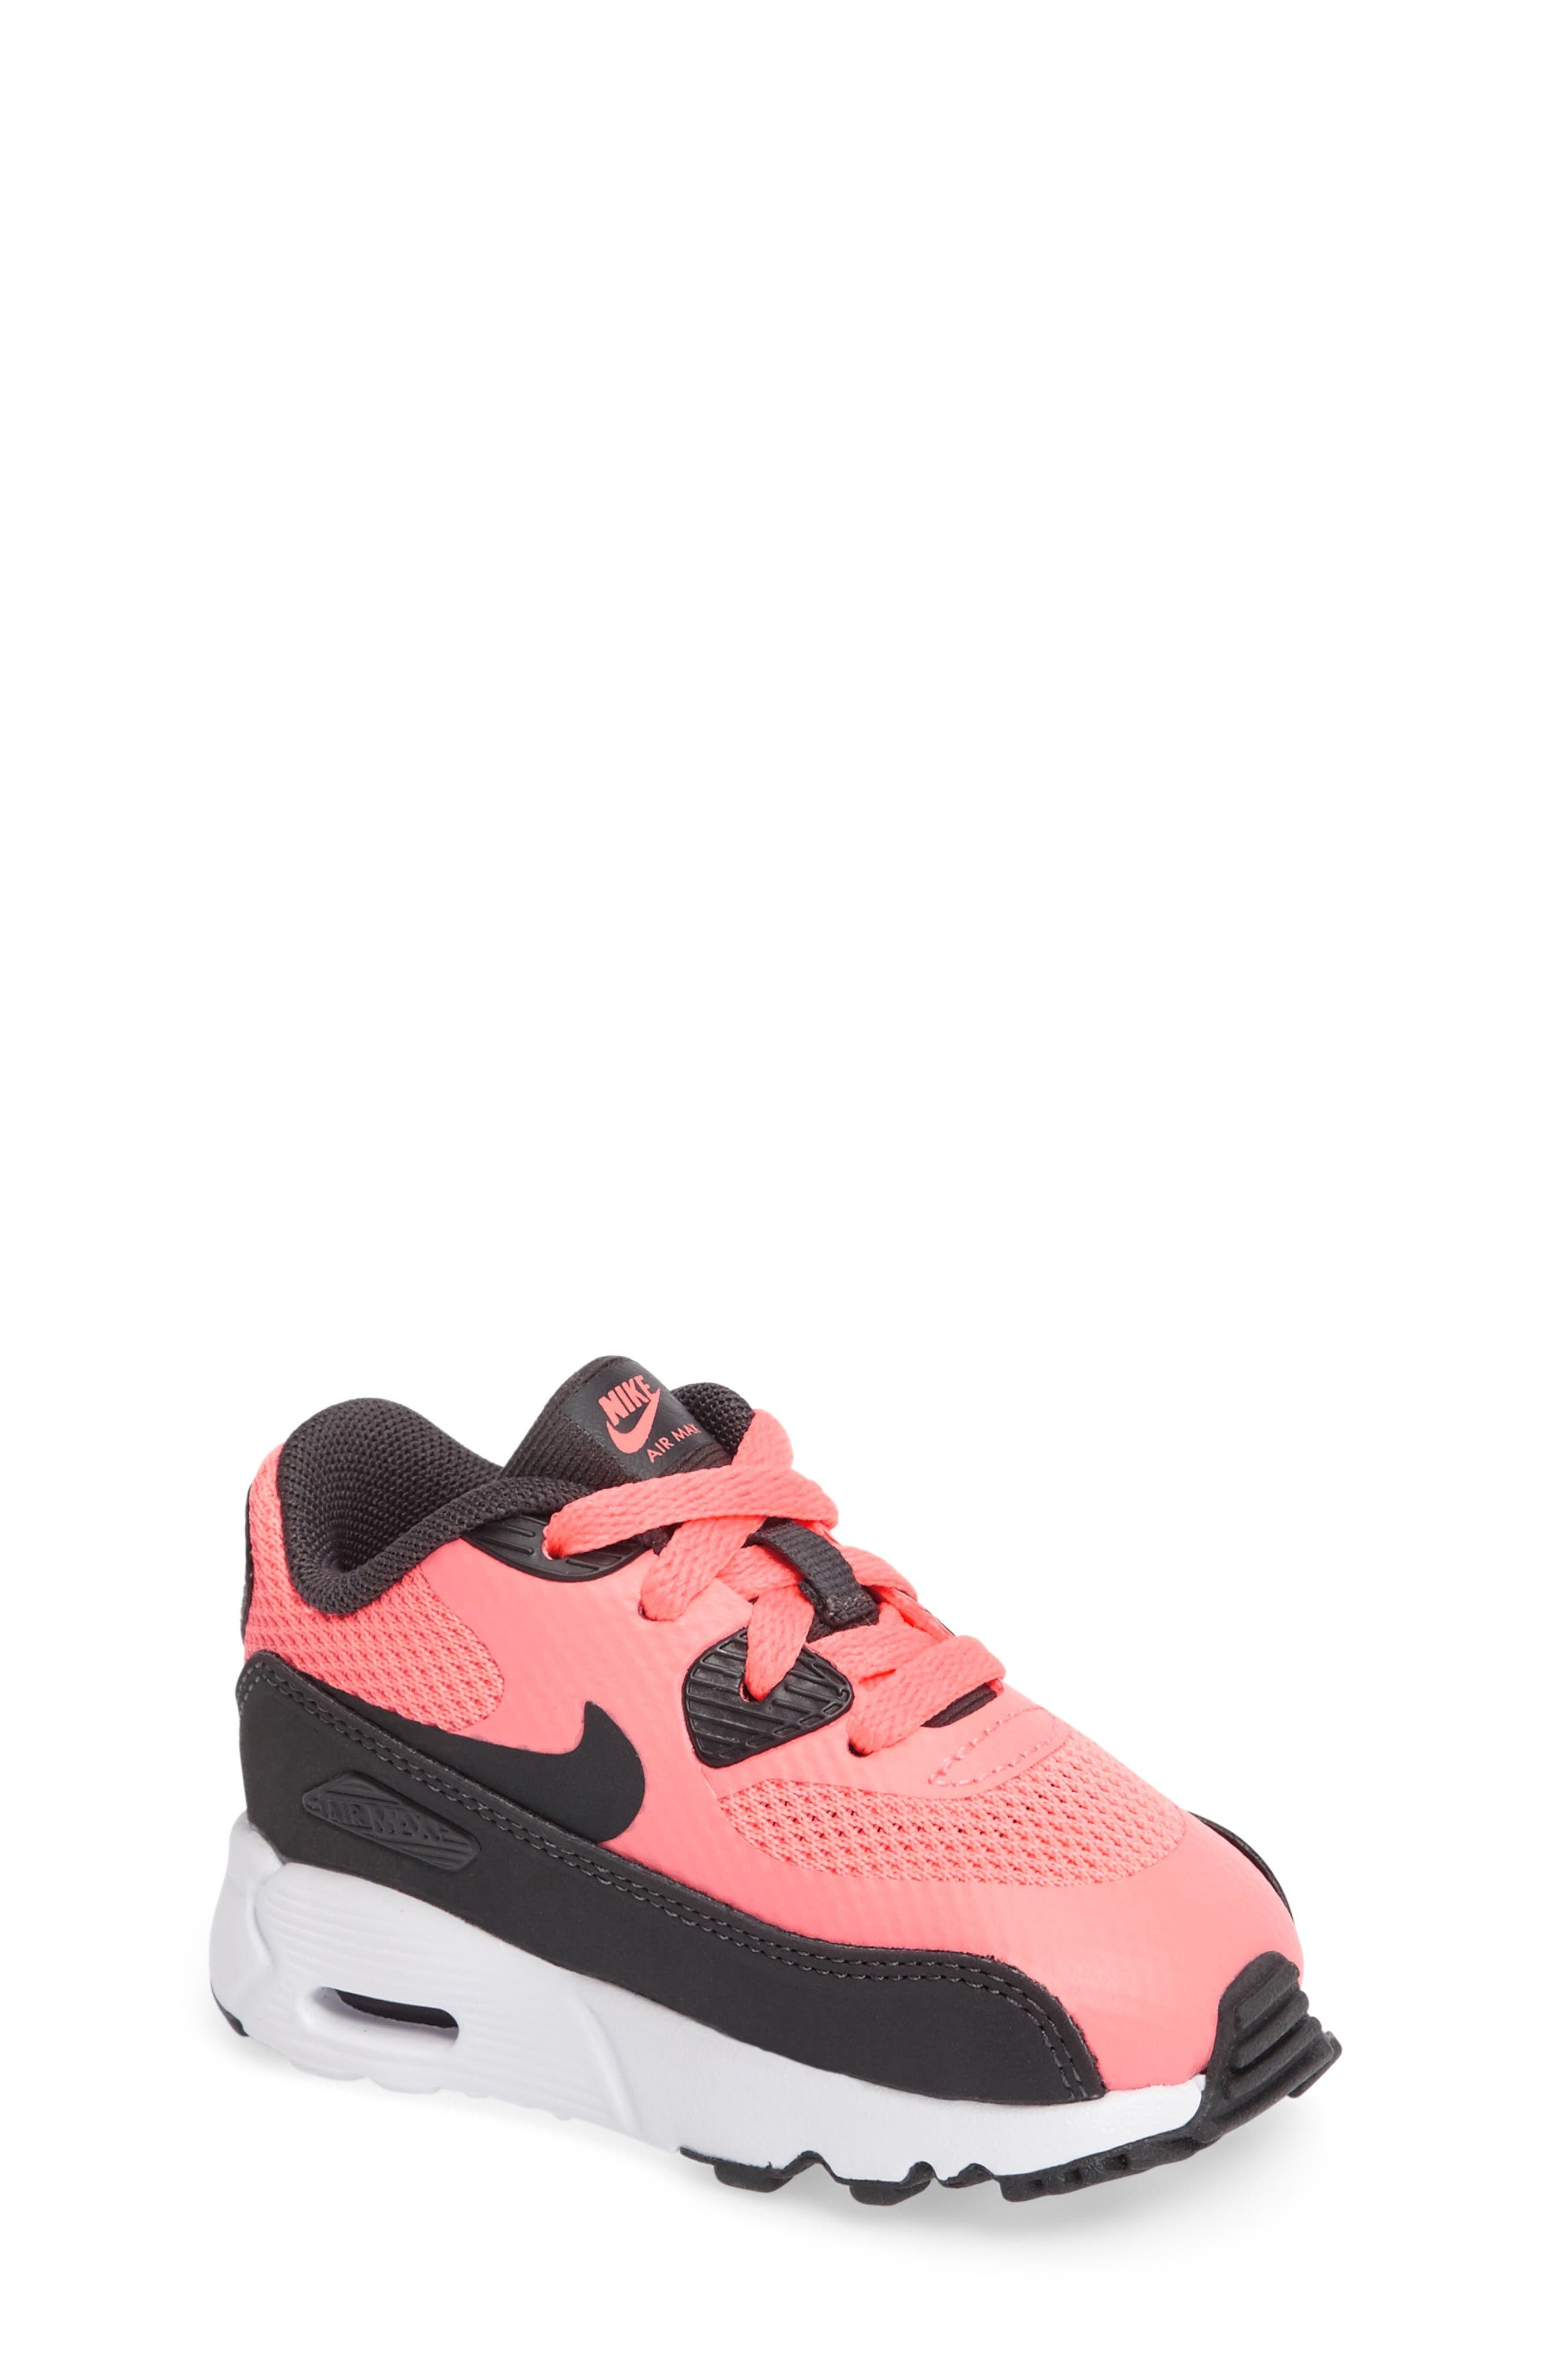 Air Max 90 Ultra 2.0 Sneaker,                             Main thumbnail 1, color,                             Lava Glow/ Anthracite/ White